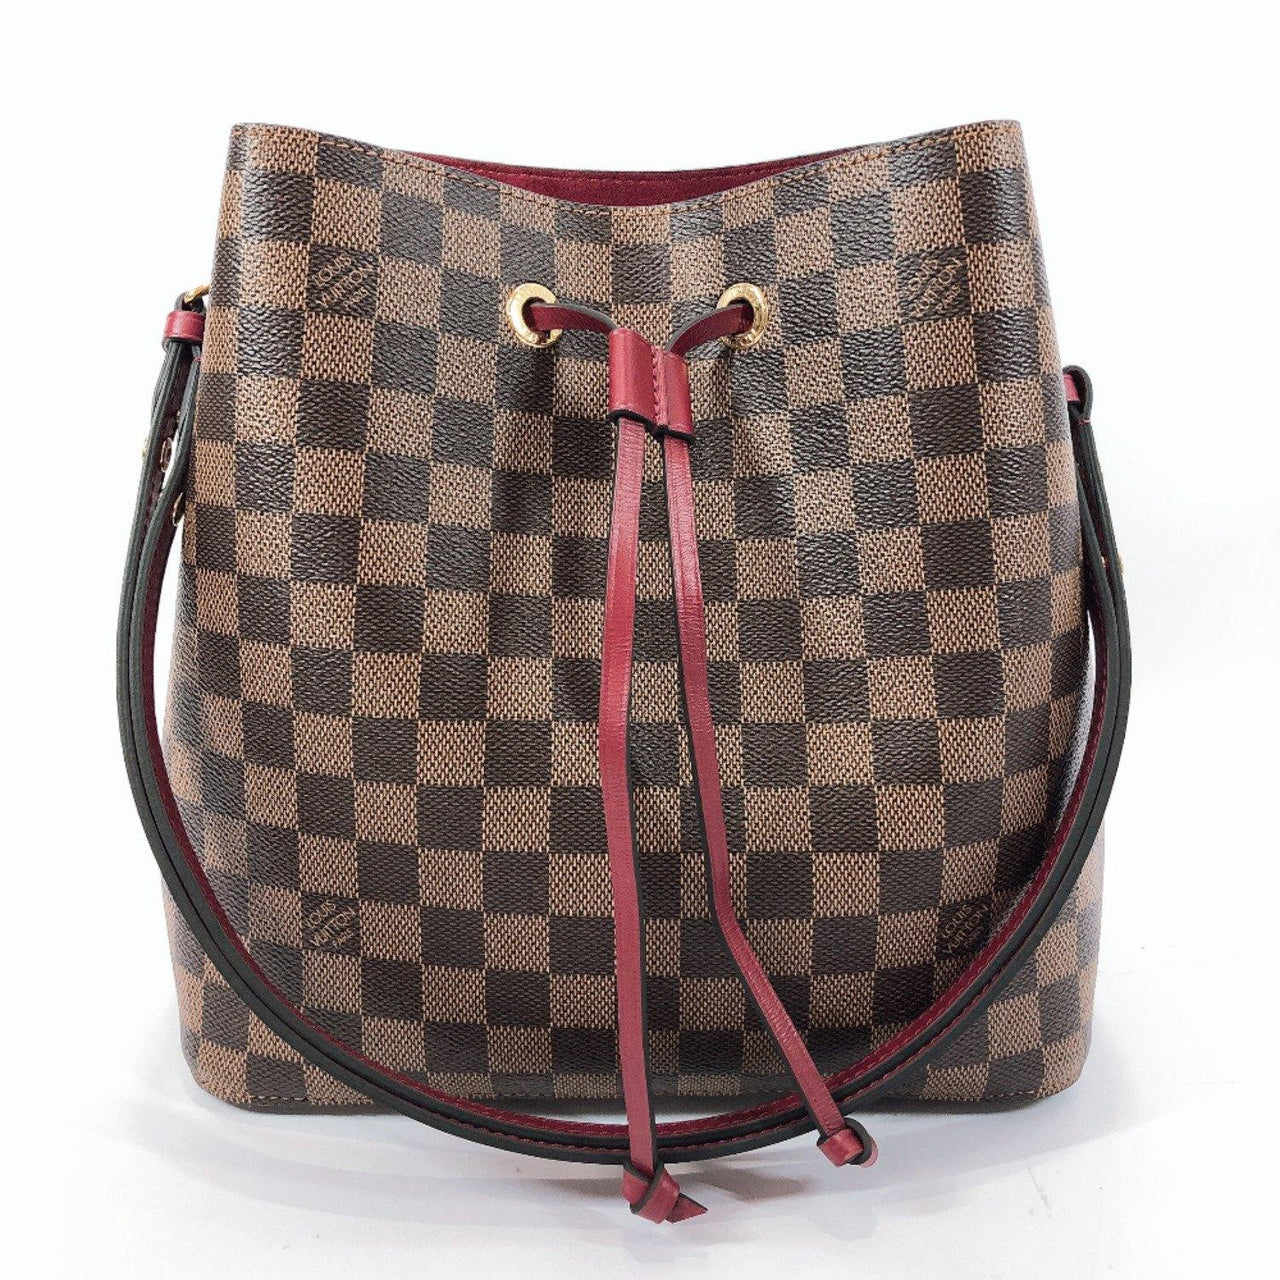 LOUIS VUITTON Shoulder Bag N40214 Neonoe Damier canvas Brown Cherry berry Women New - JP-BRANDS.com